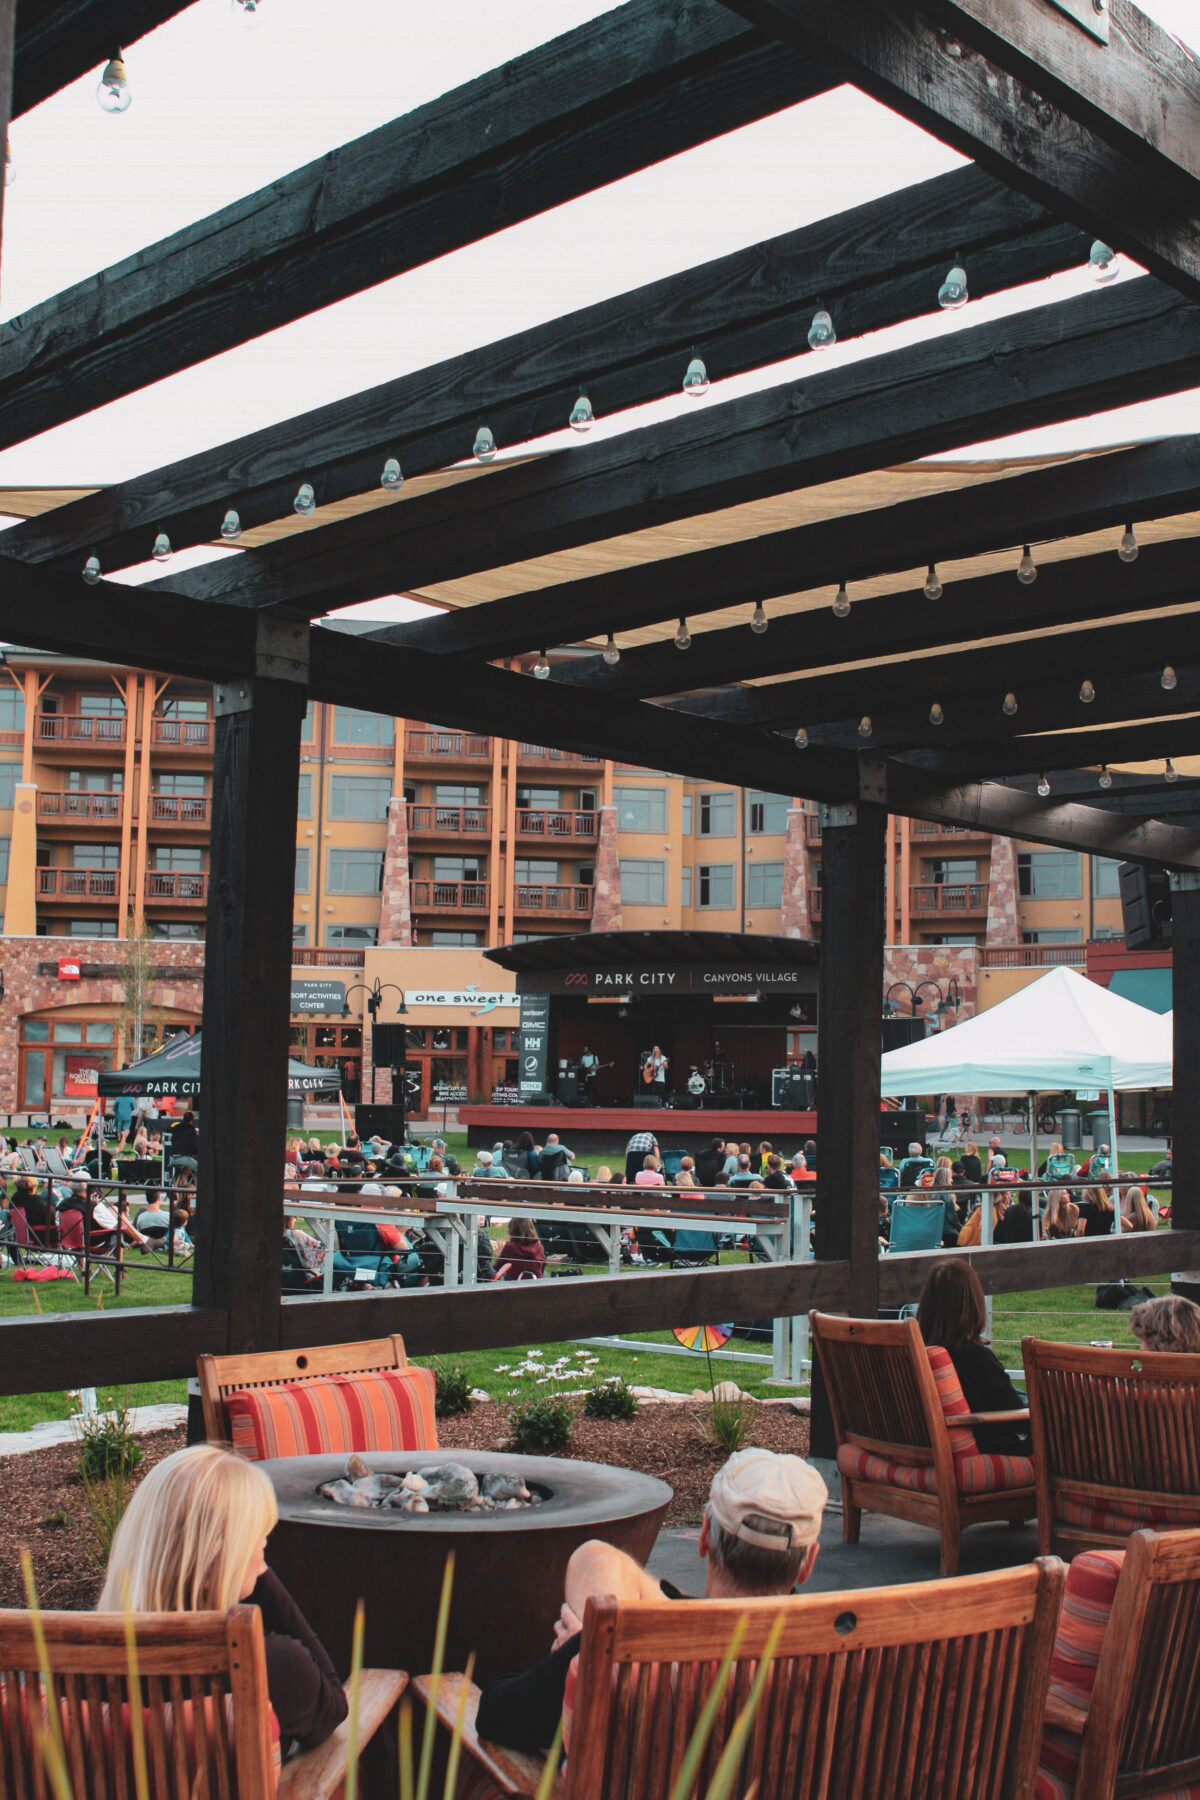 Live music on the lawn of Sundial Lodge located in Canyons Village, Park City Utah